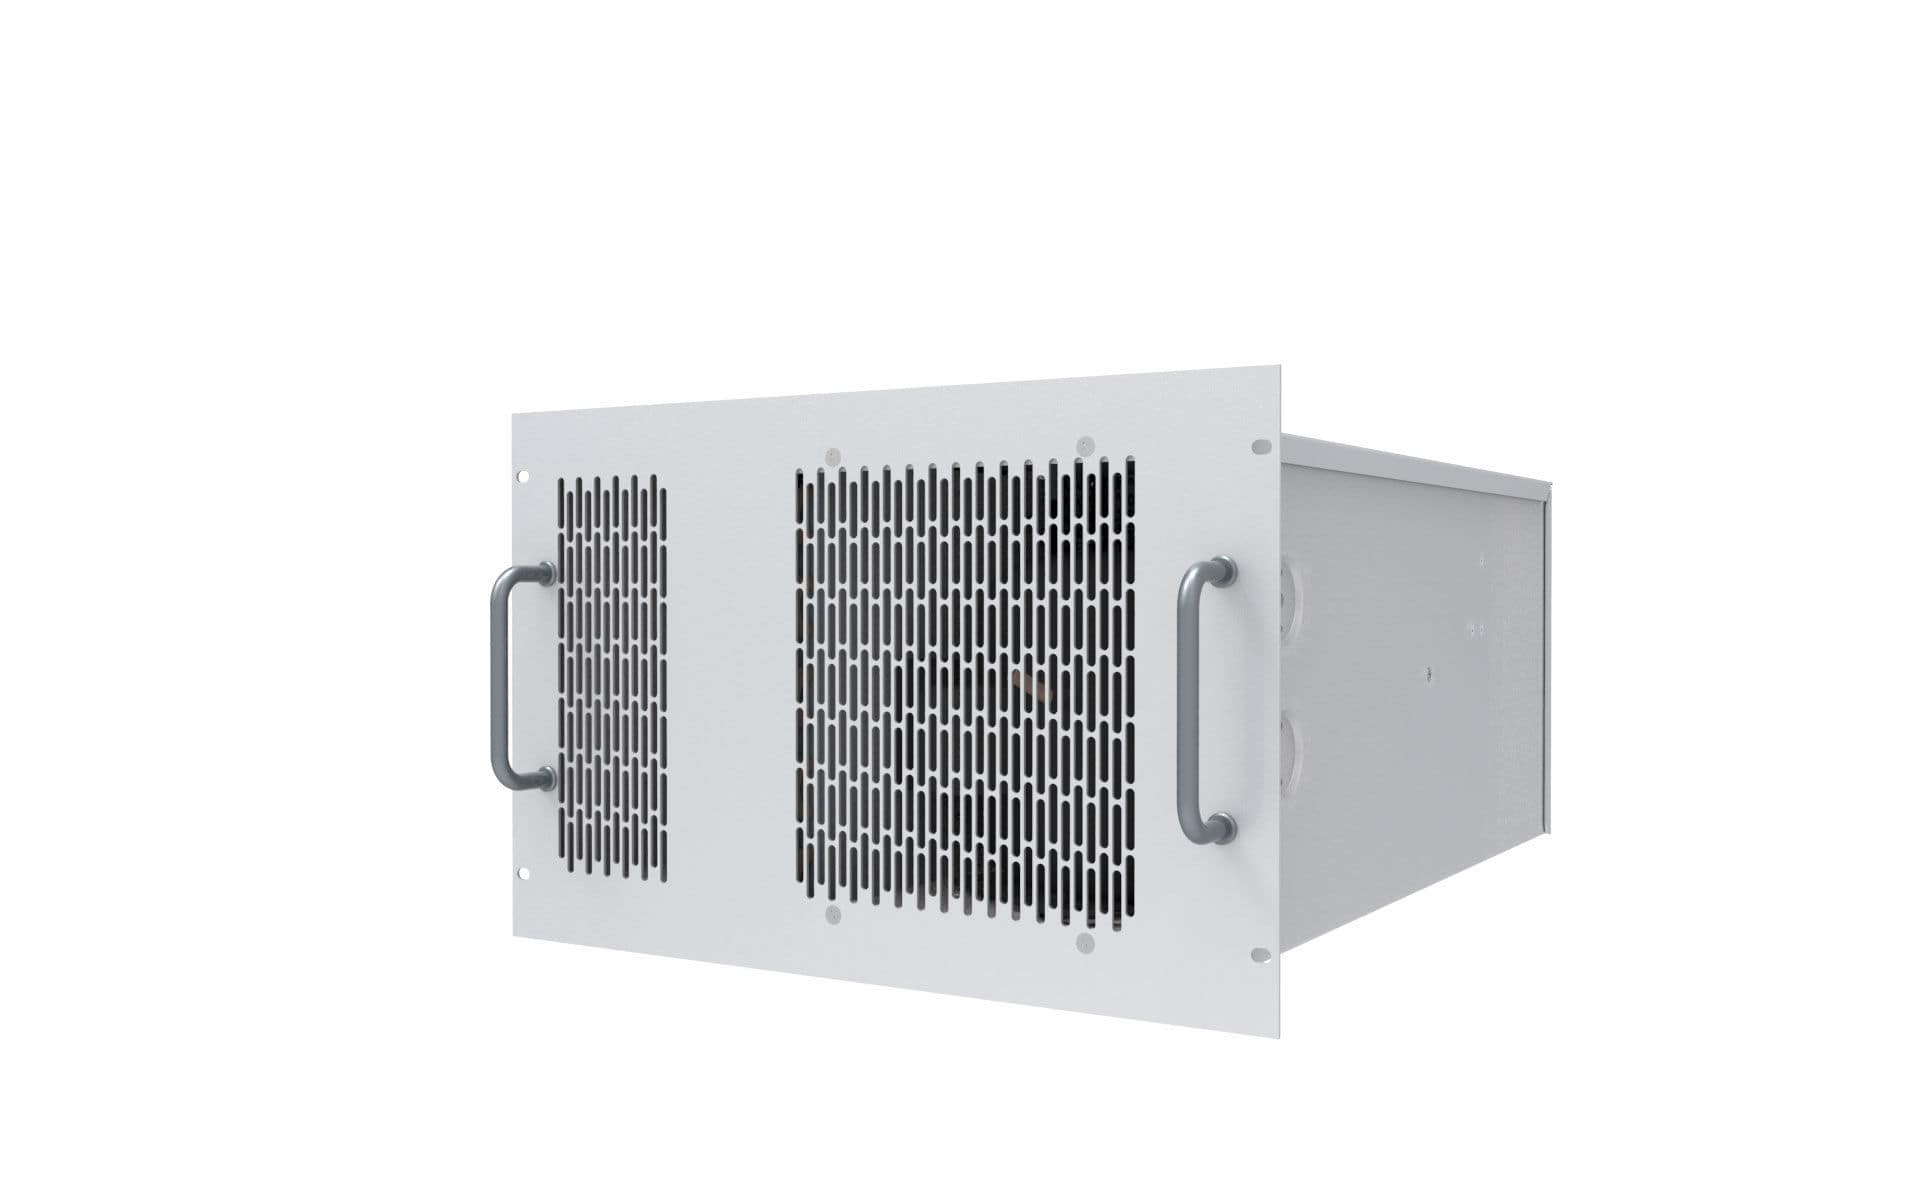 rack mount electrical cabinet air